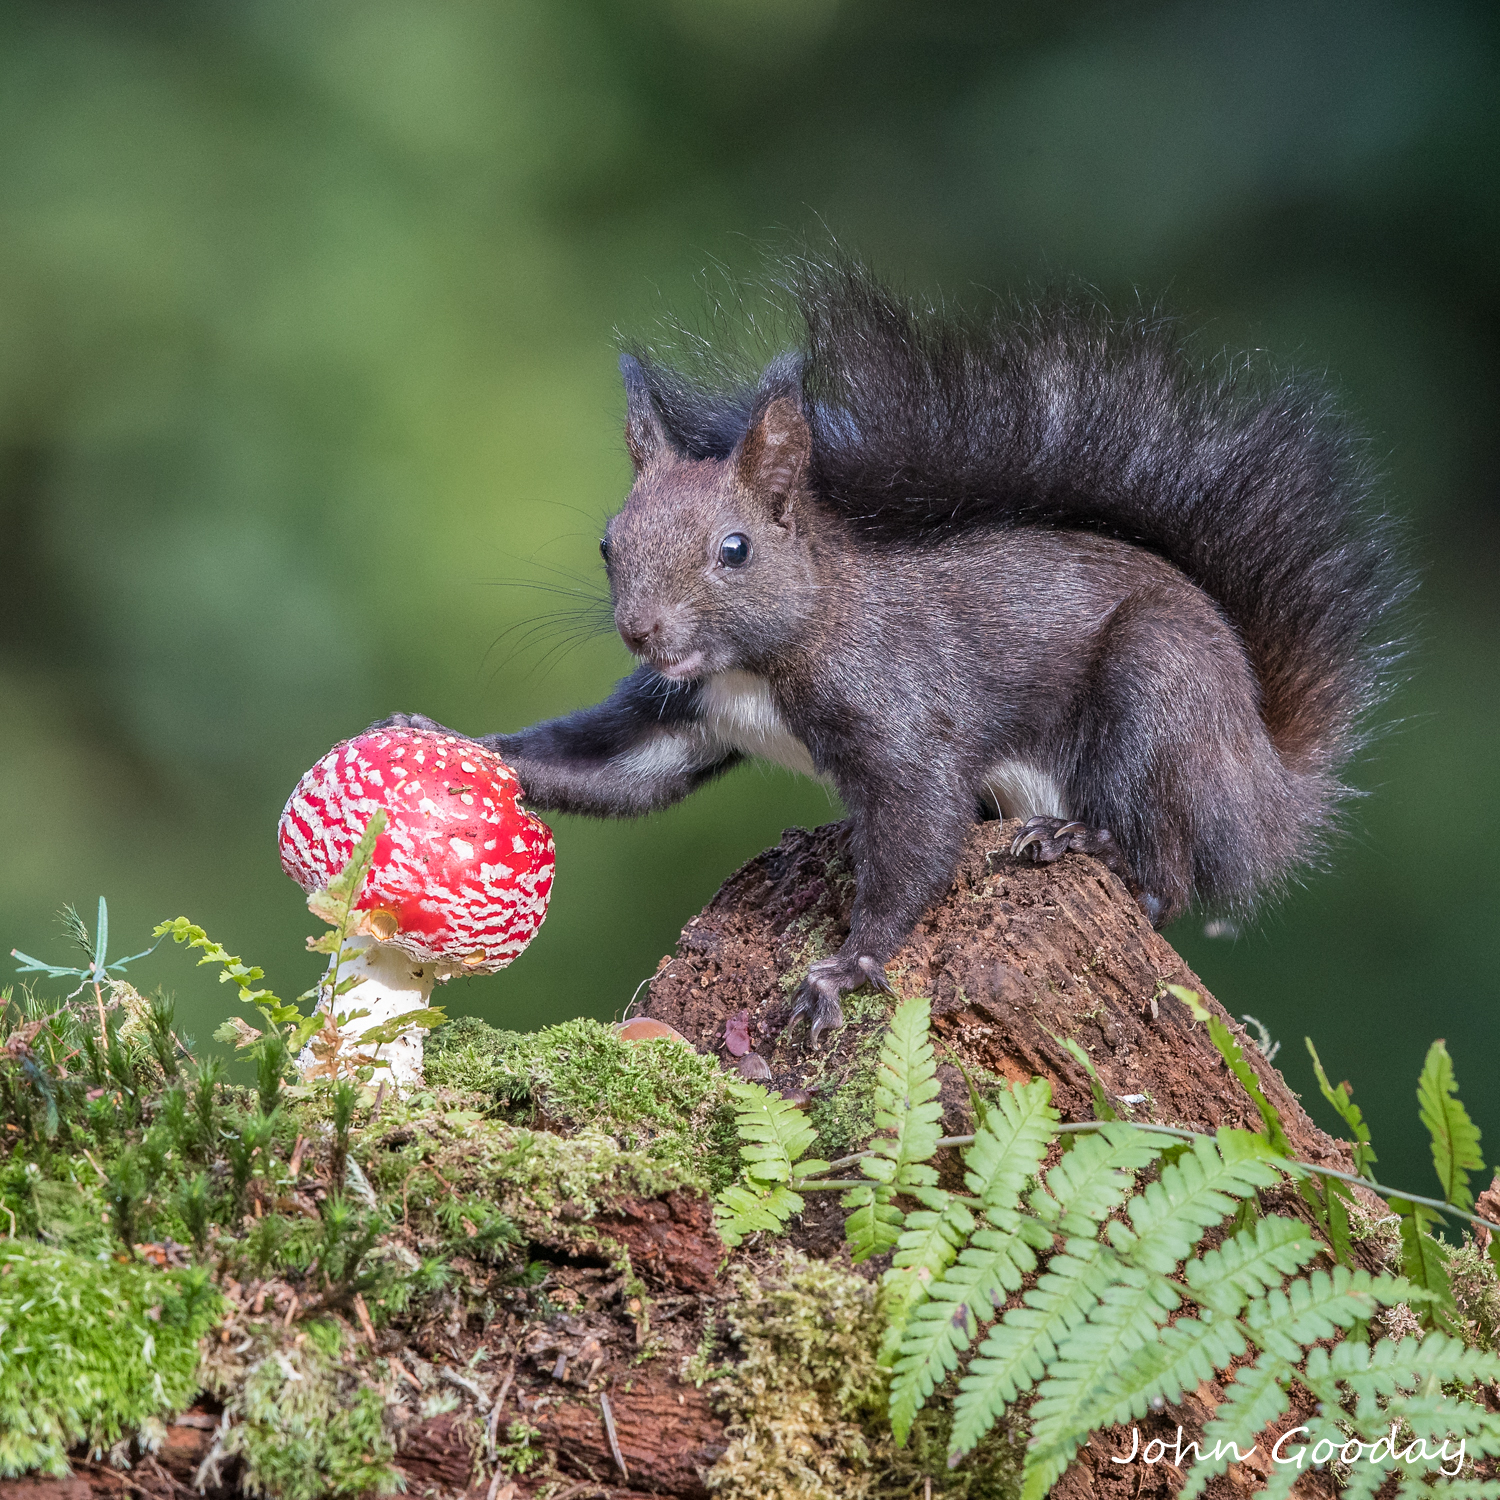 Photo 4: A Red Squirrel in the Viennese Forest, Austria, investigating a Fly Agaric toadstool. Thanks to my wildlife film maker friend Gunther for inviting me to photograph with him in the forest around his home.